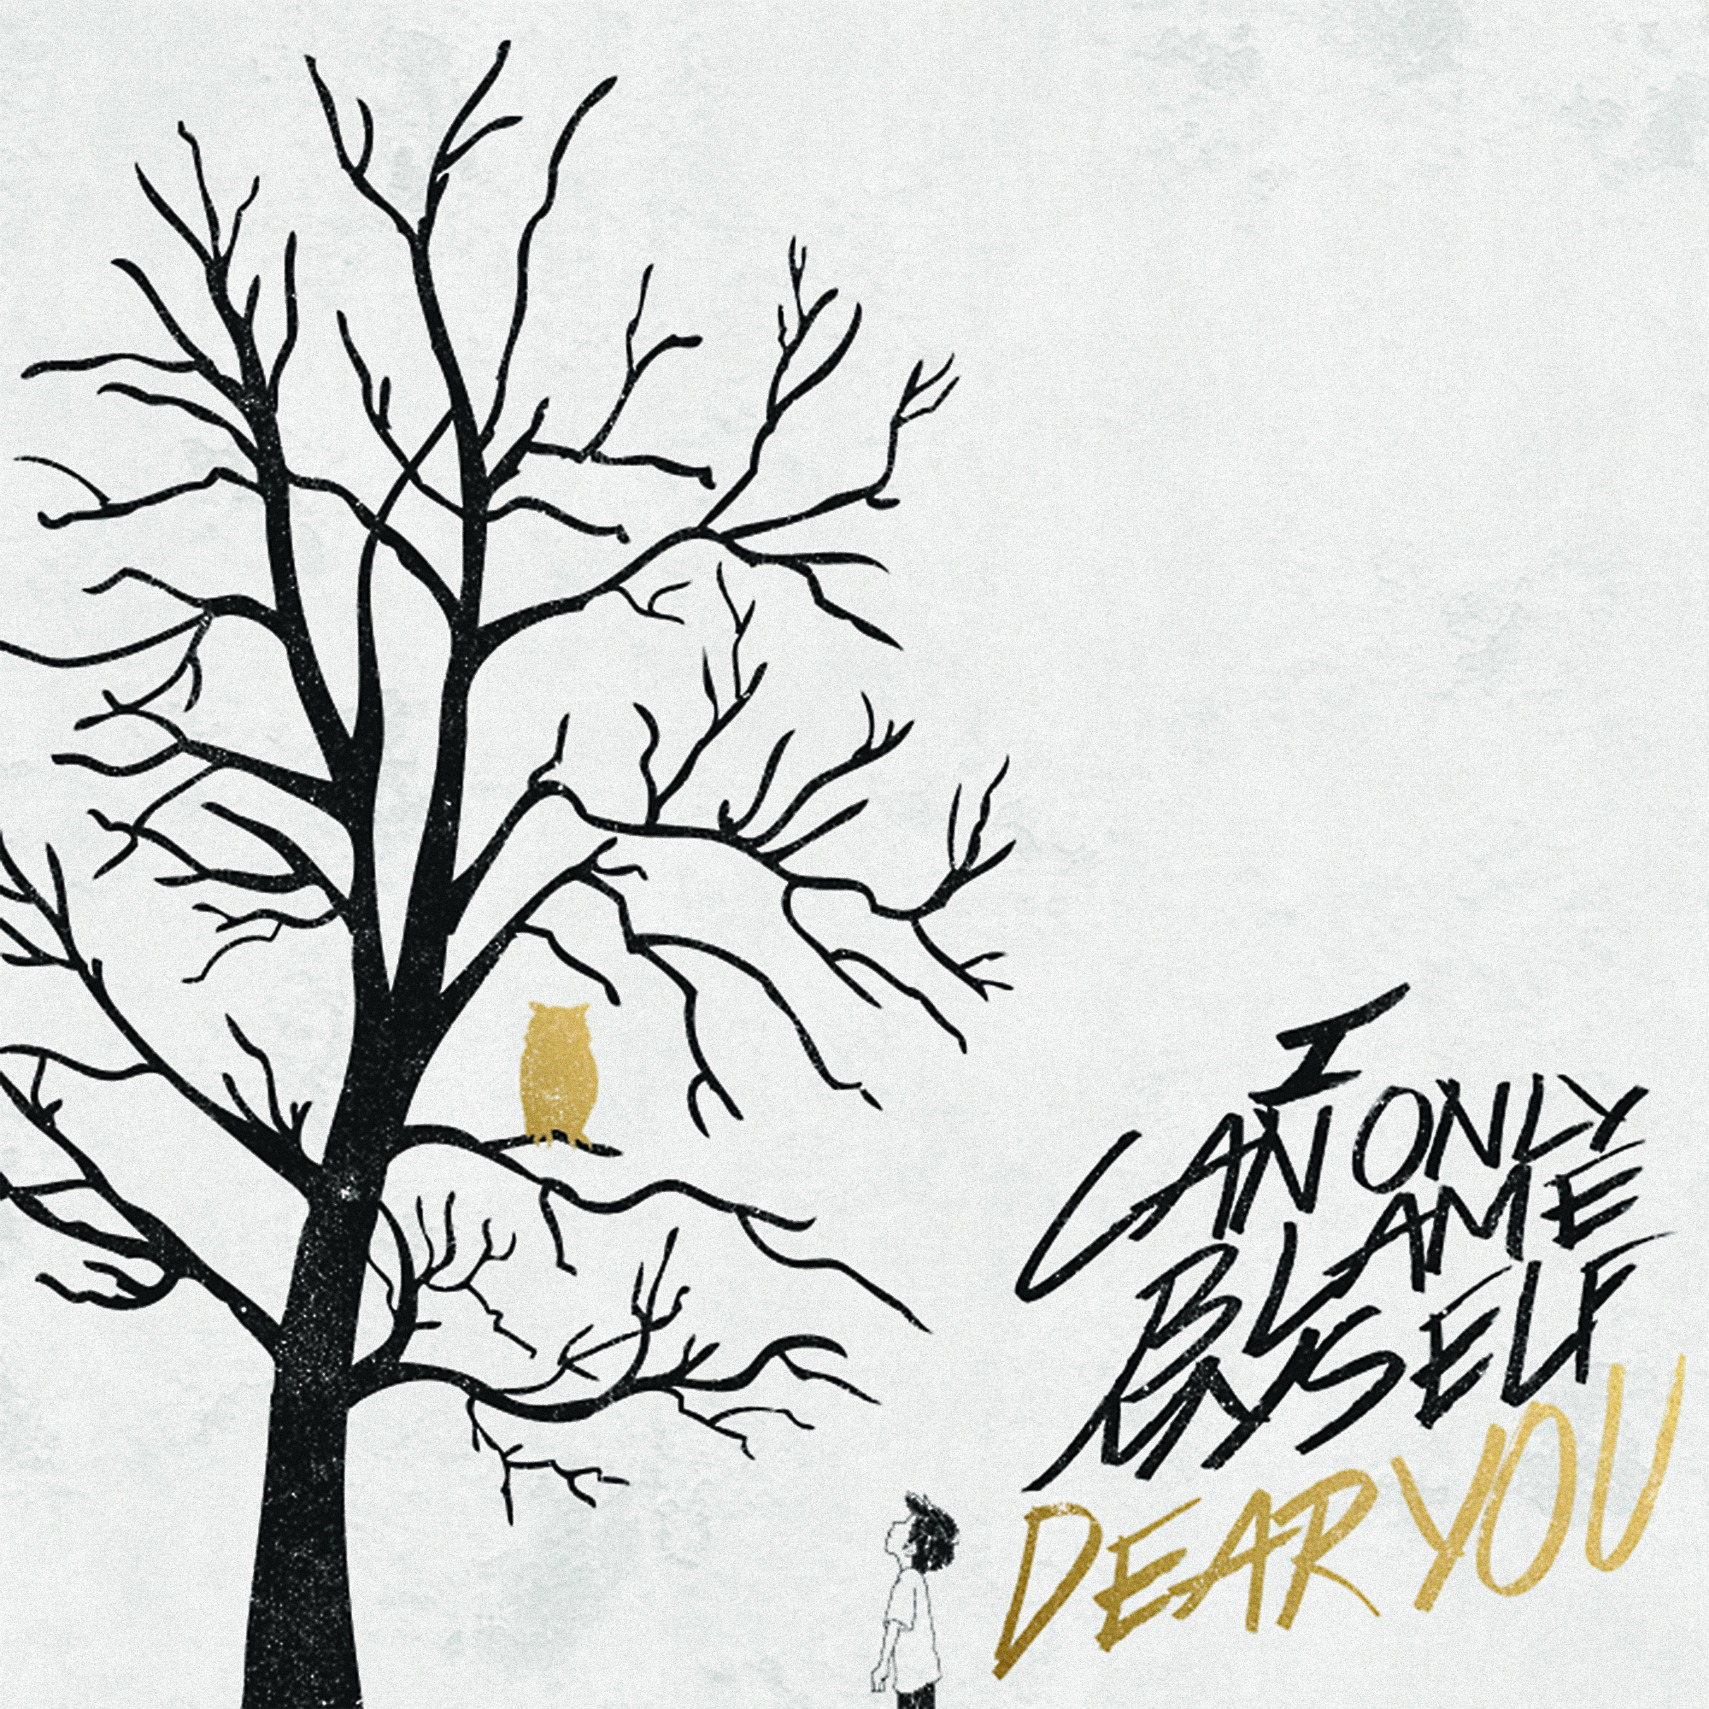 Tastes Like Rock - Dear You - I Can Only Blame Myself Review